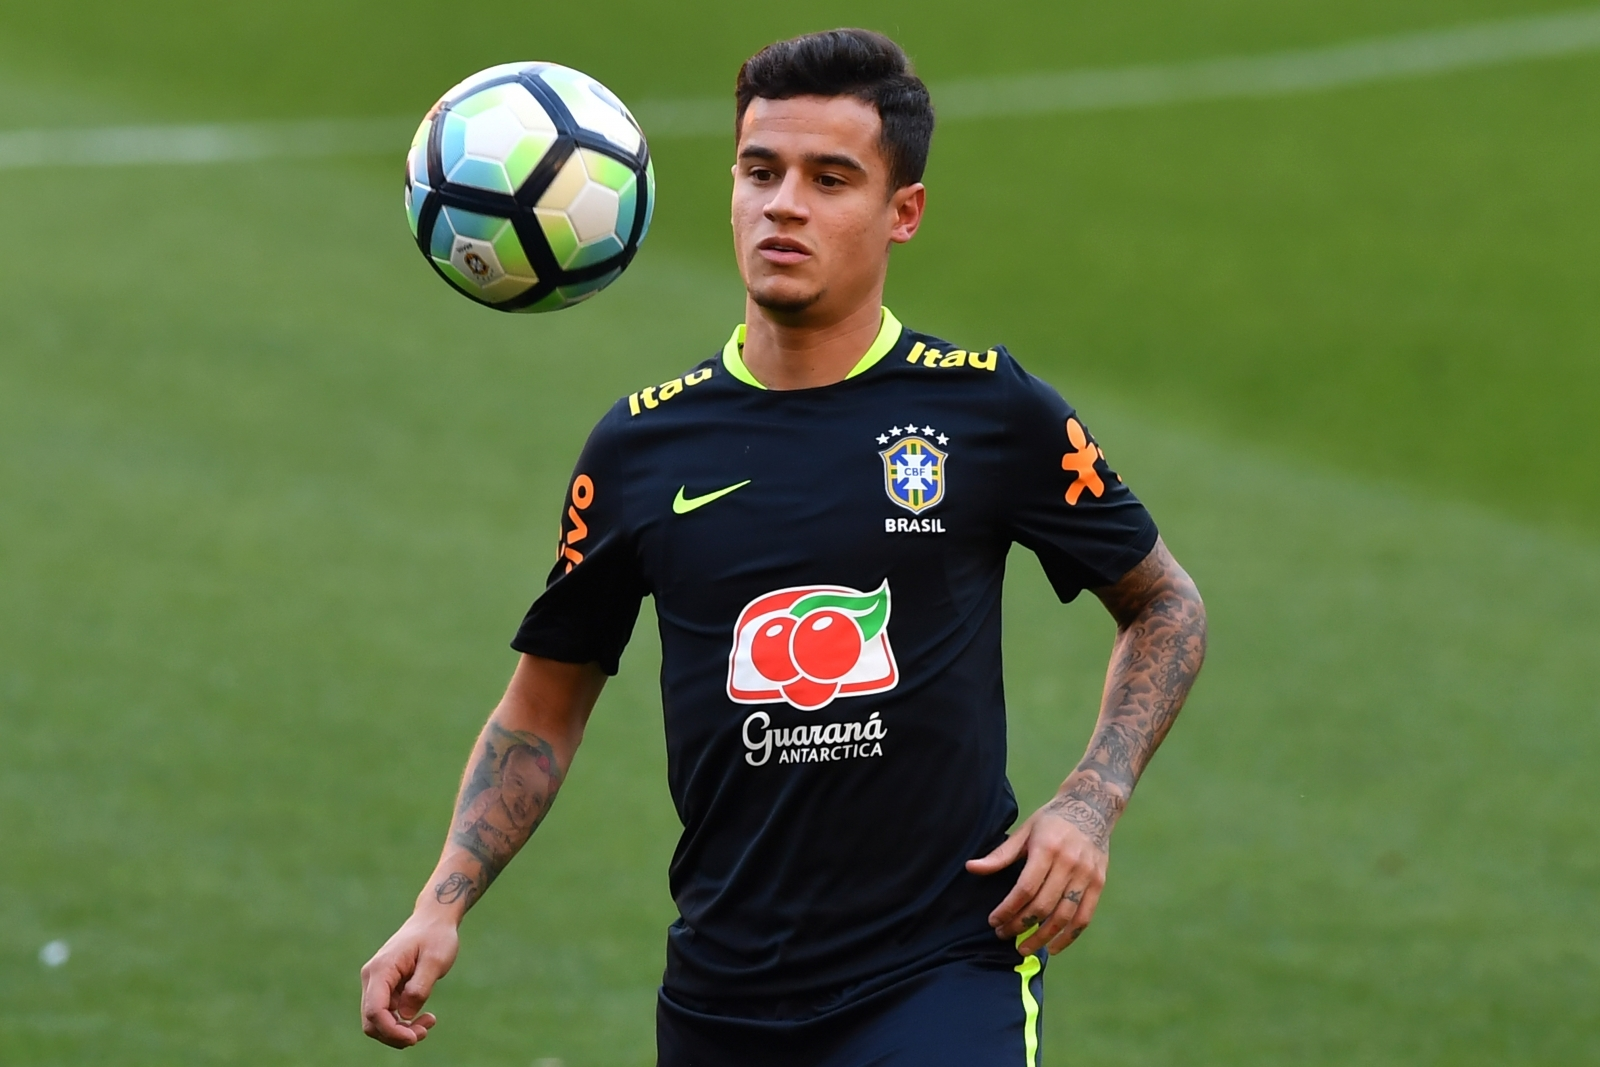 Barca put off by 200 million euro price tag — Coutinho